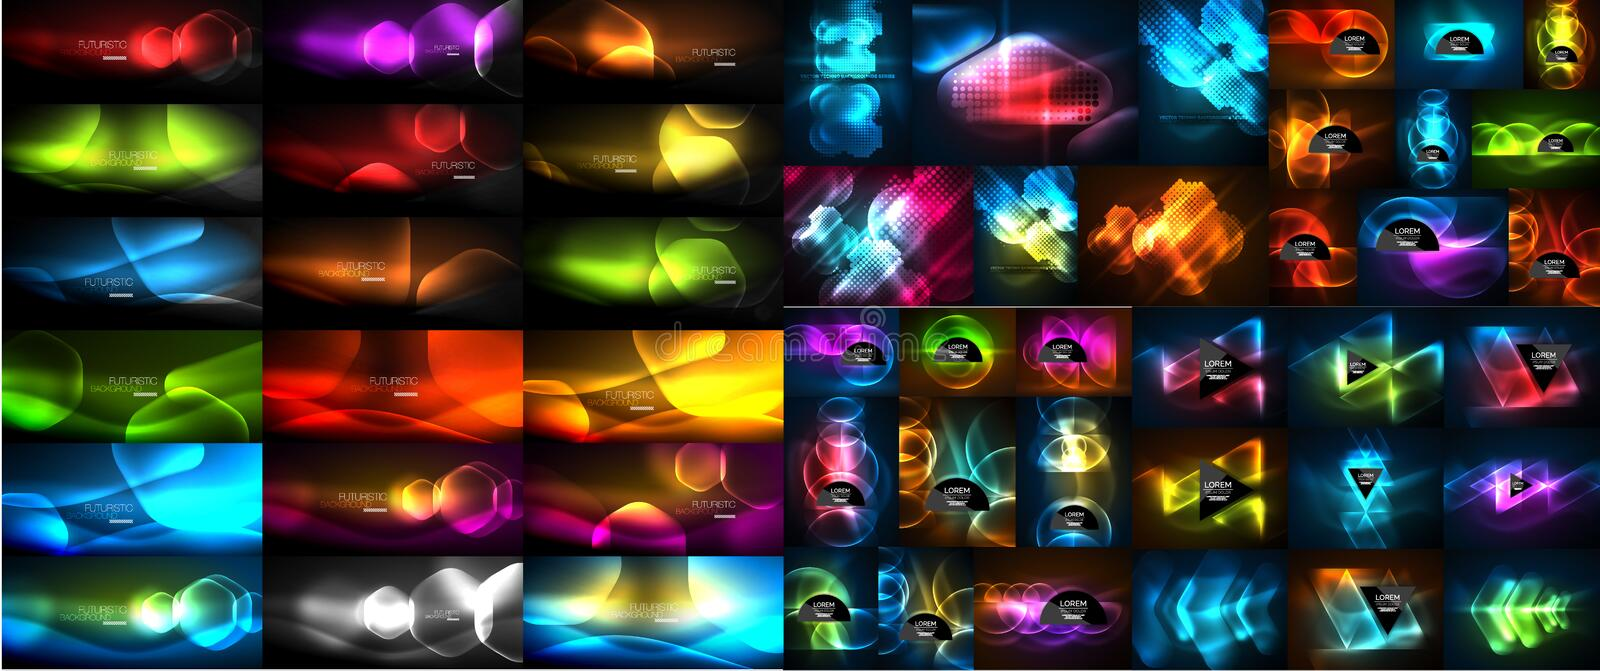 Mega collection of vector glowing effect abstract backgrounds - shiny lines, waves, geometric forms in the dark with royalty free illustration